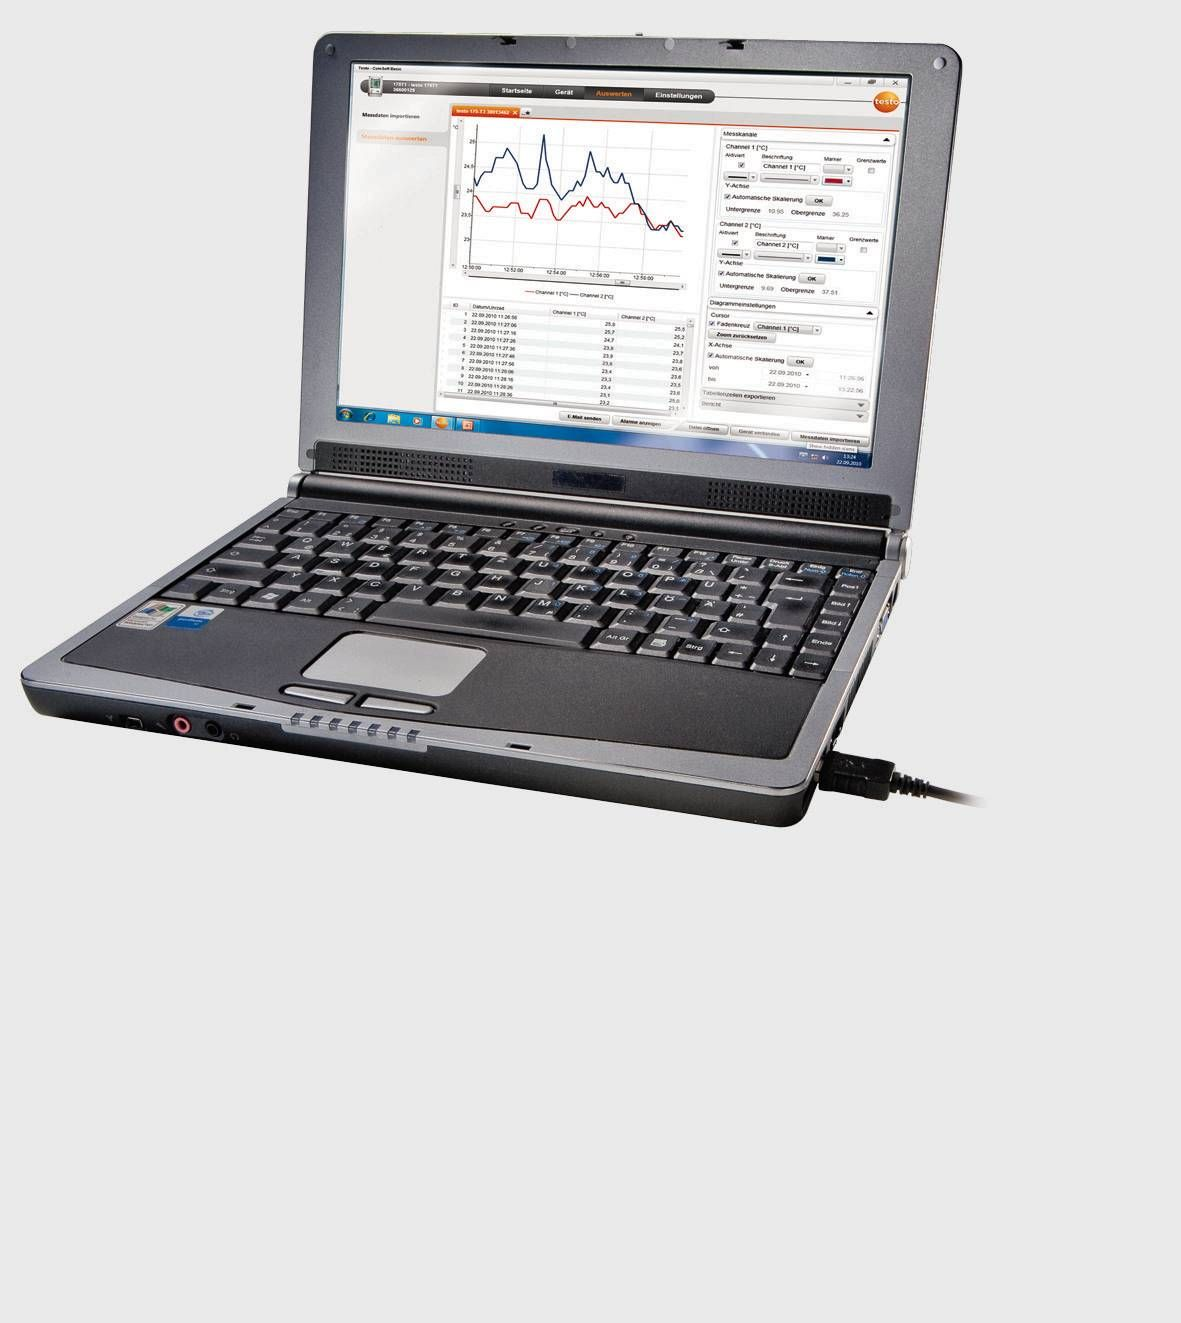 Software ComSoft para data logger de pressão